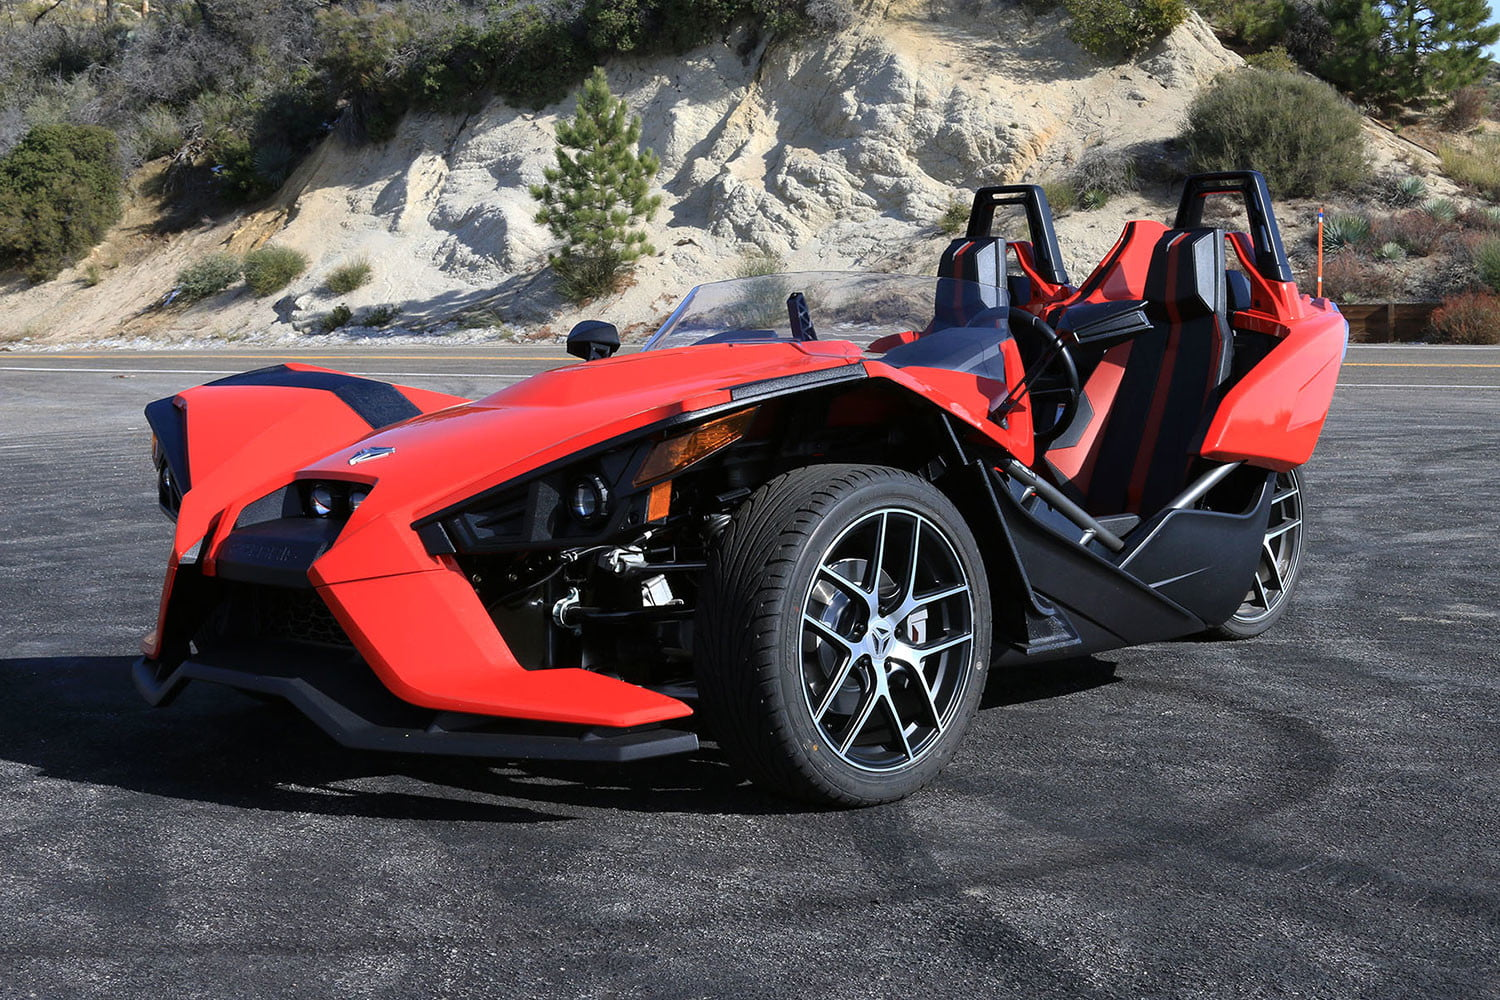 2016 Polaris Slingshot >> 2016 Polaris Slingshot Sl Review Digital Trends